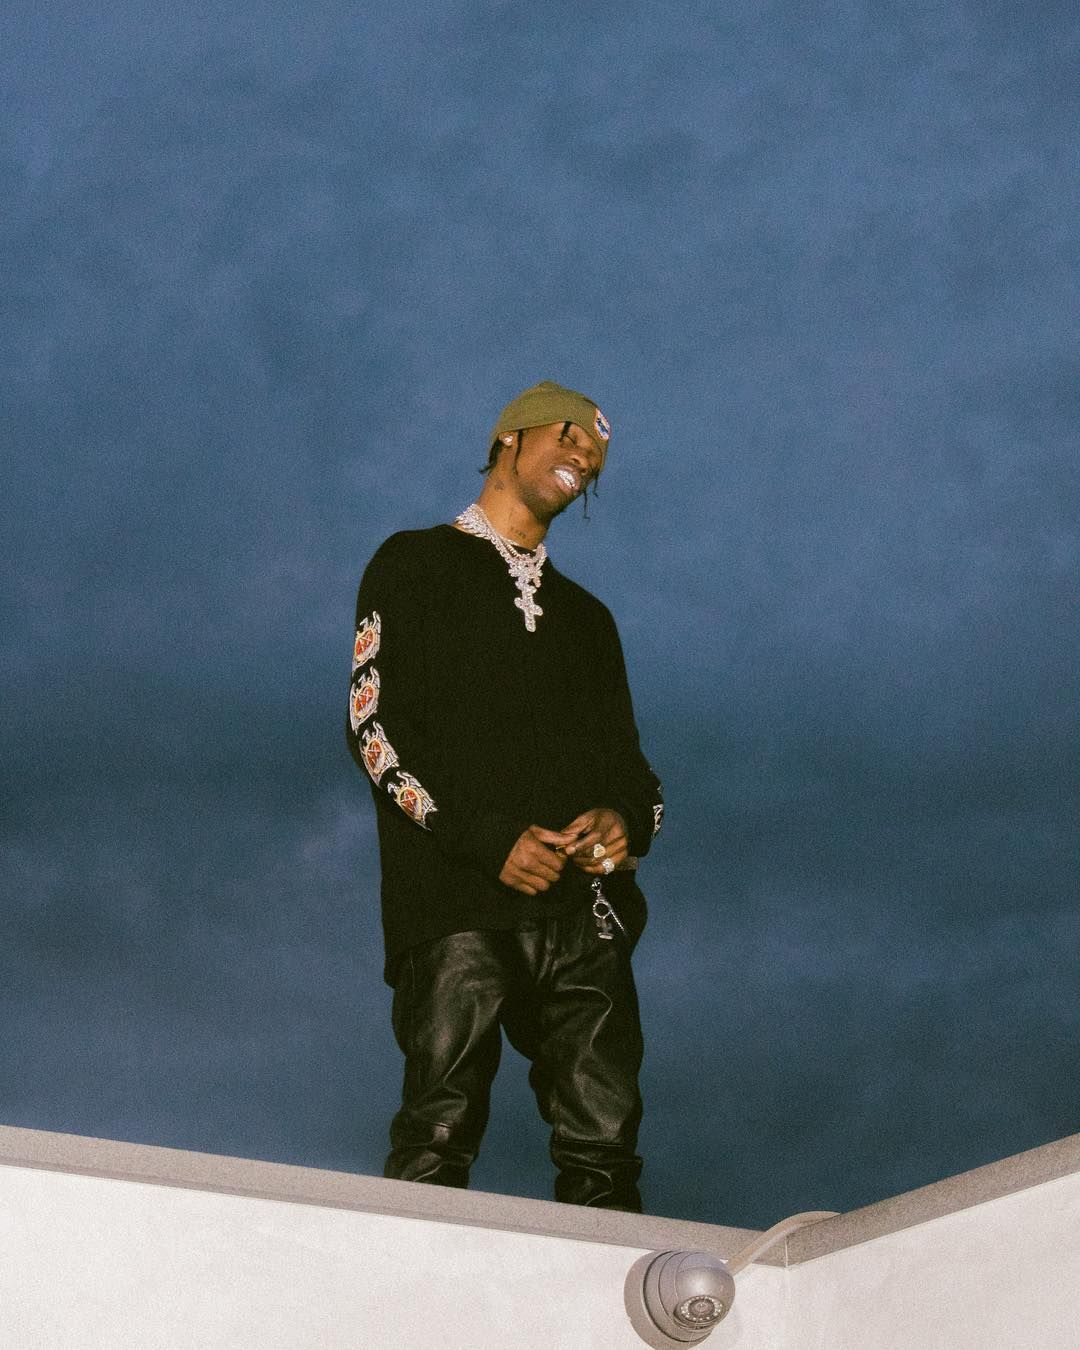 Audio Travis Scott Stargazing Mp3 Download With Images